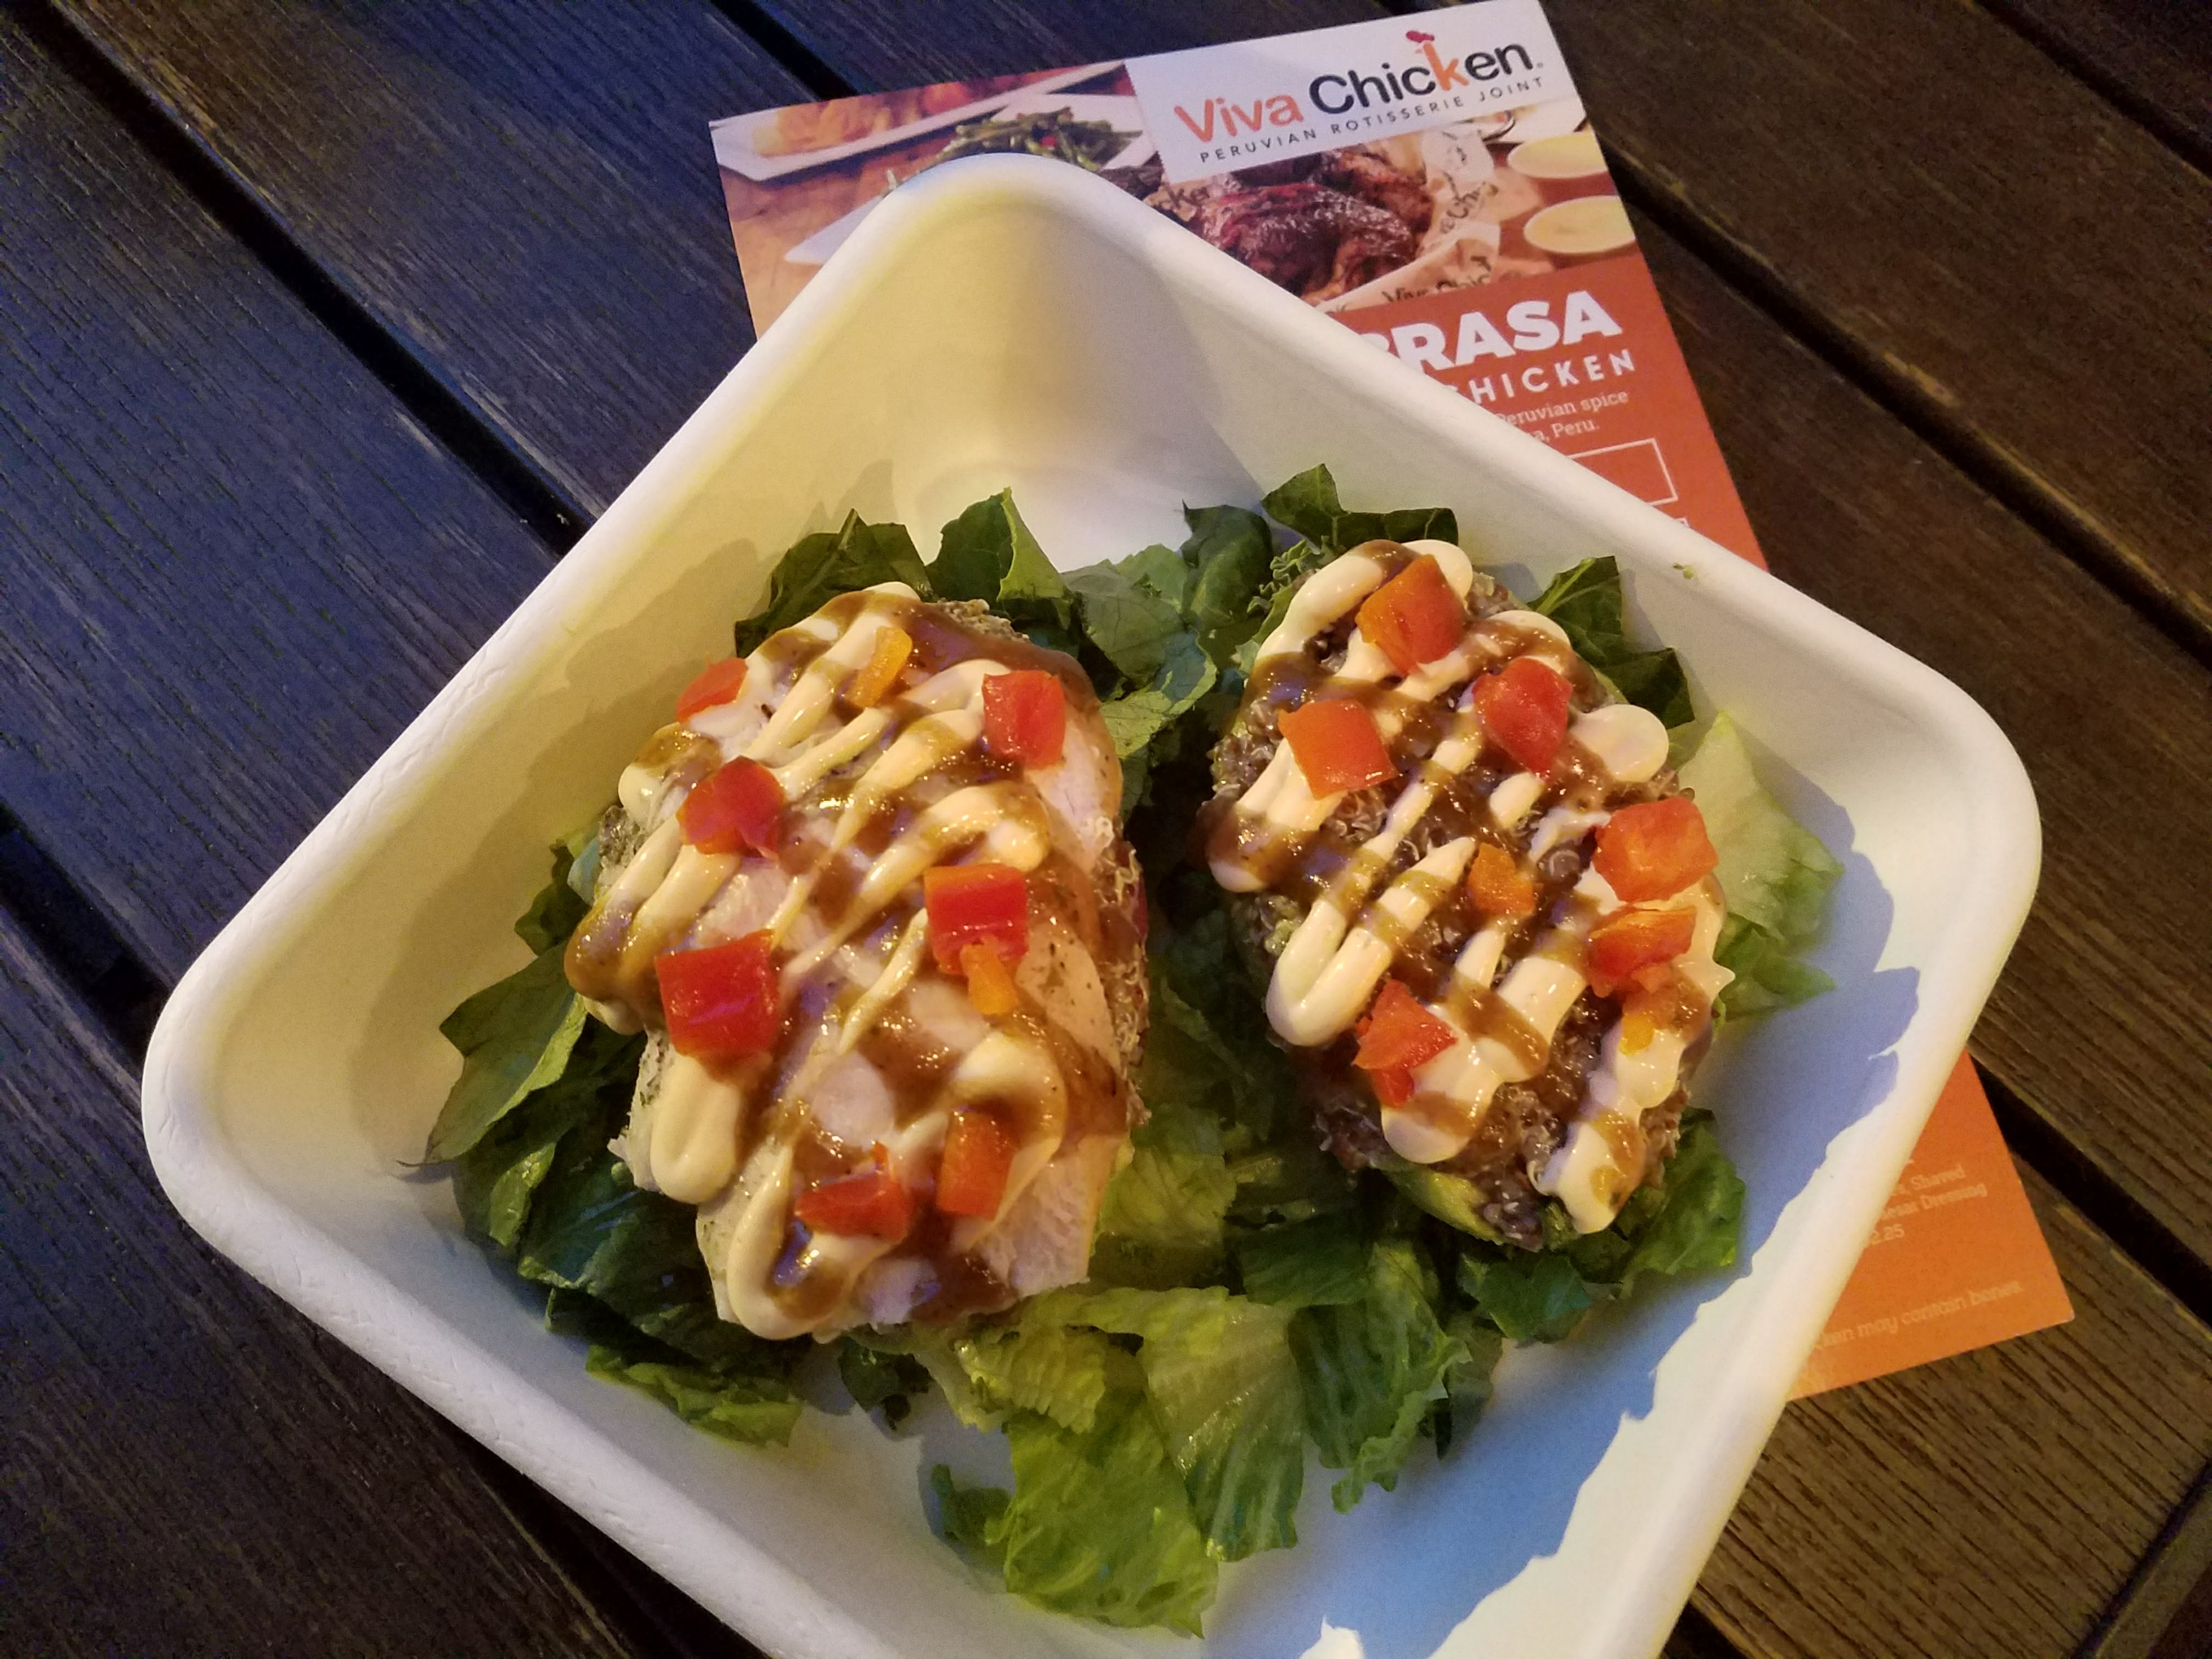 Viva chicken menu review rotisserie chicken charlotte nc the quinoa stuffed avocado is by far one of our favorite items on the menu and its not just our opinion viva chicken sells more than 120000 quinoa forumfinder Images